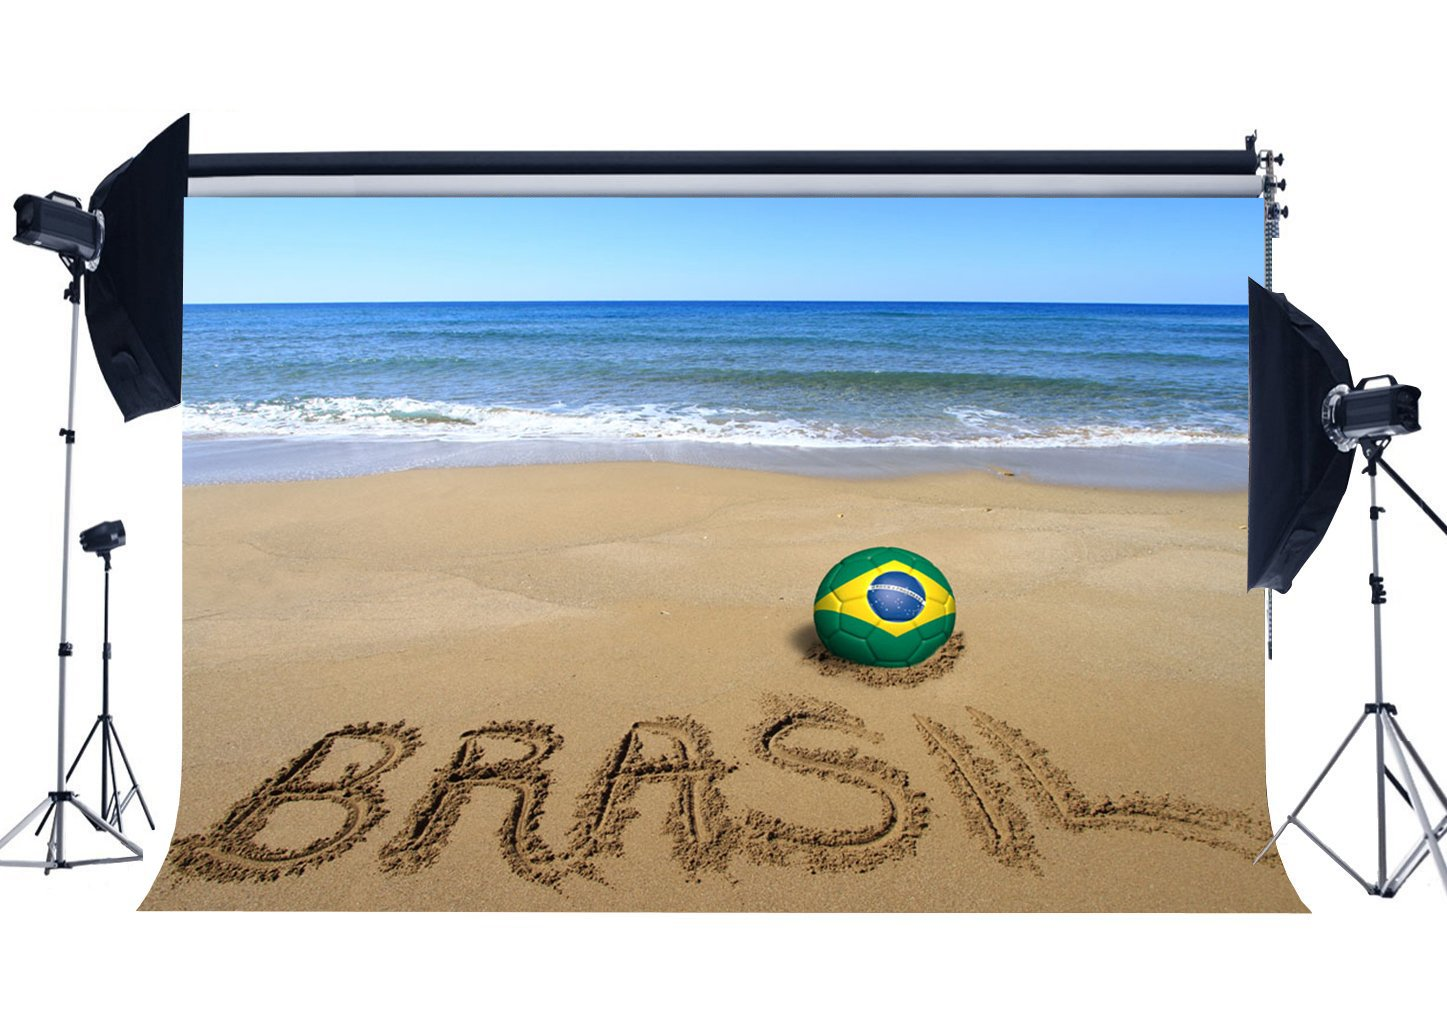 Brasil Football Field Backdrop Tropical Sand Beach Backdrops Seaside Sports Match Photography Background-in Photo Studio Accessories from Consumer Electronics